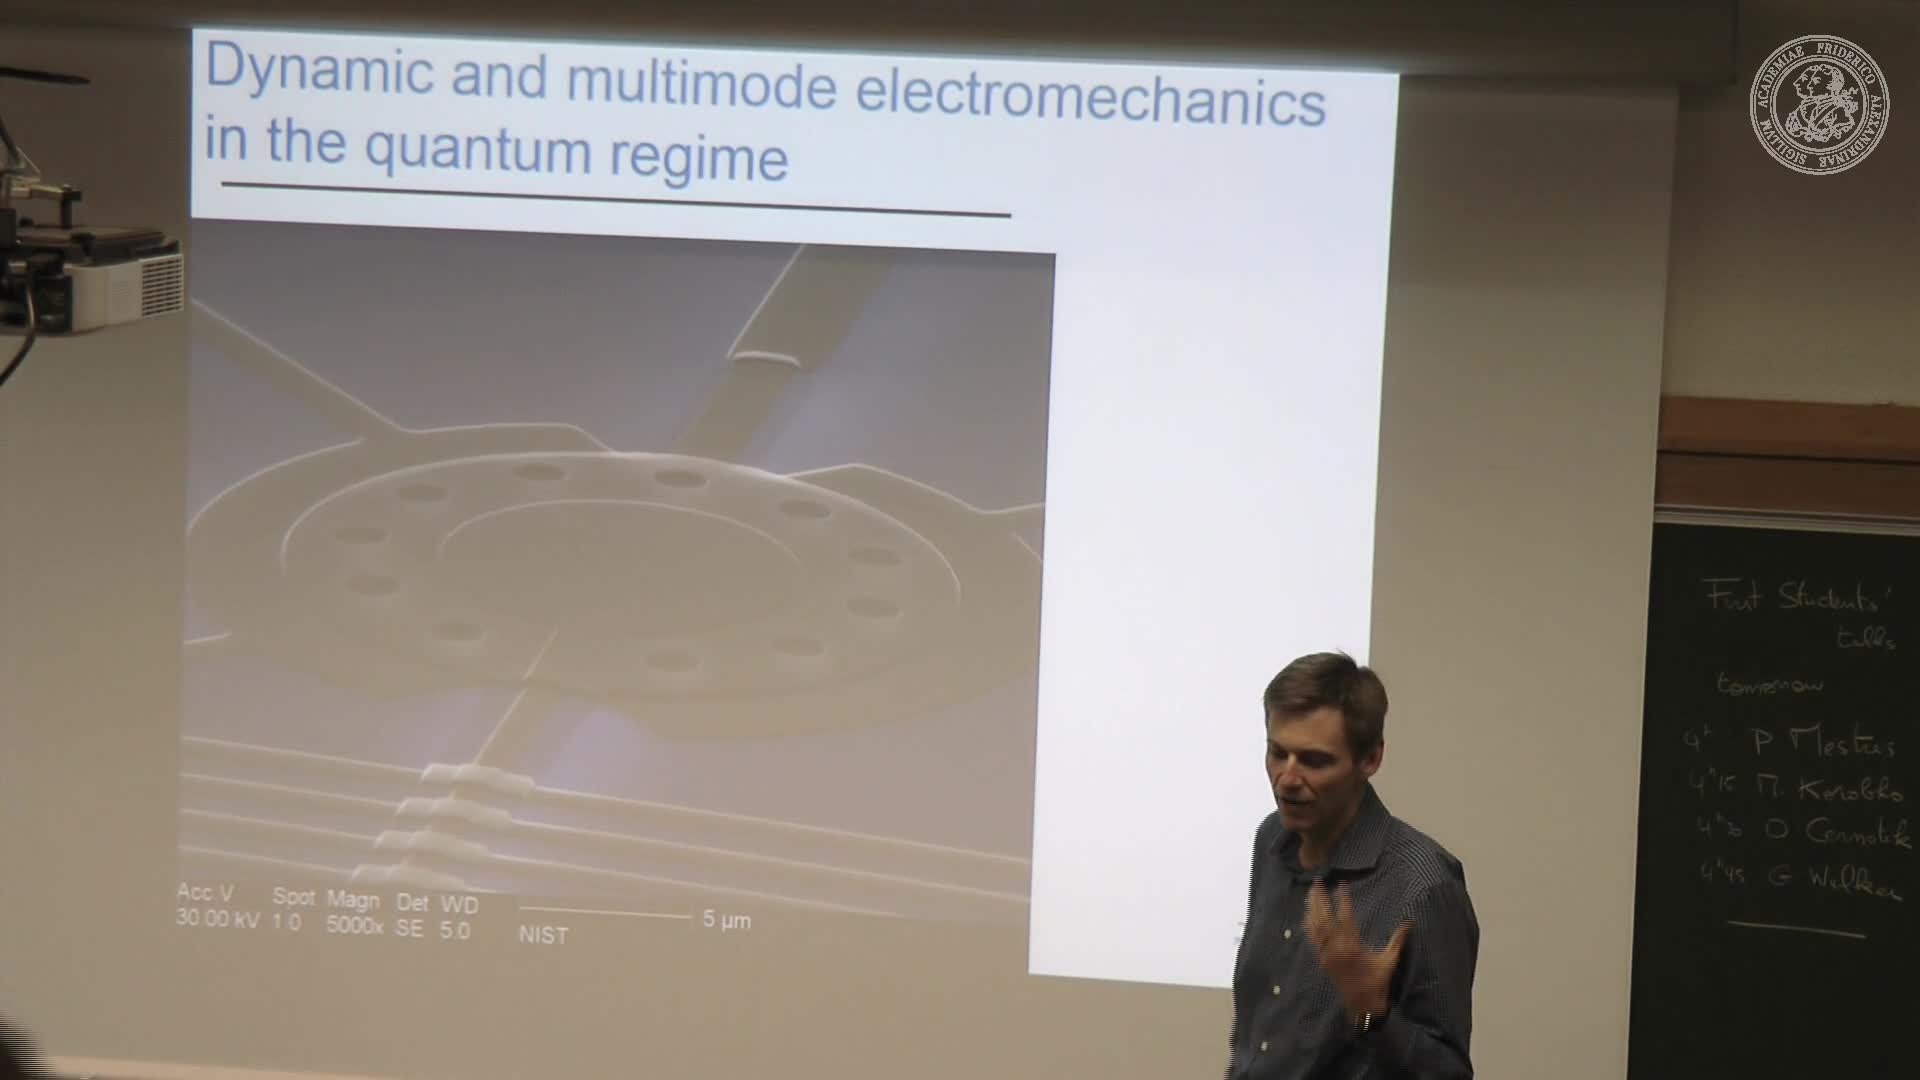 Dynamic and multimode electromechanics - 1 preview image